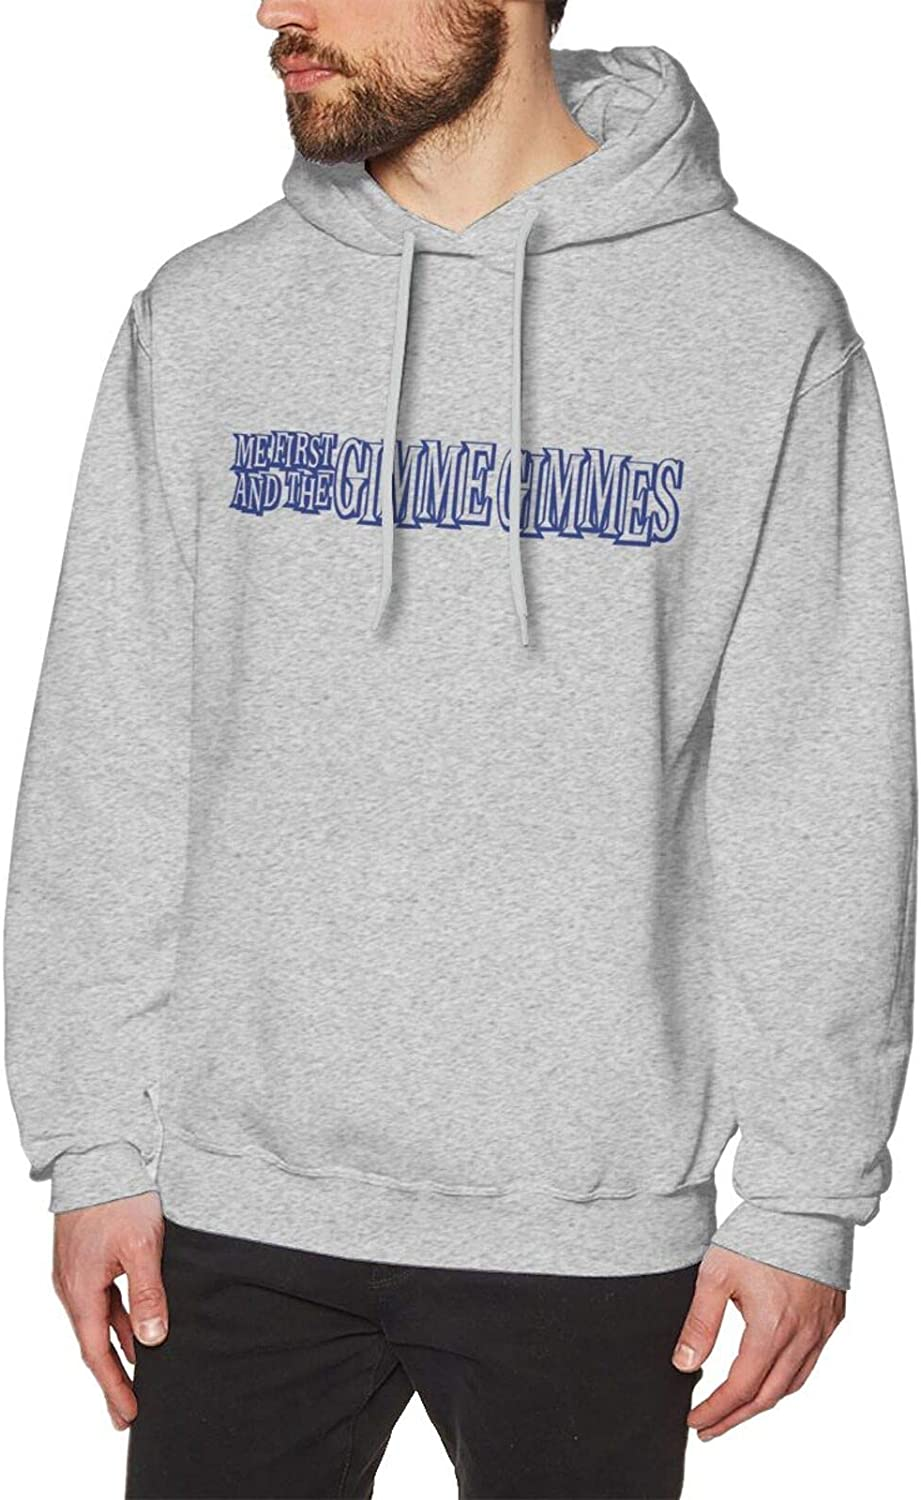 Youth Man favorite Sale SALE% OFF Me First and The Long Gimmes Hooded Sweatshirt Gimme S